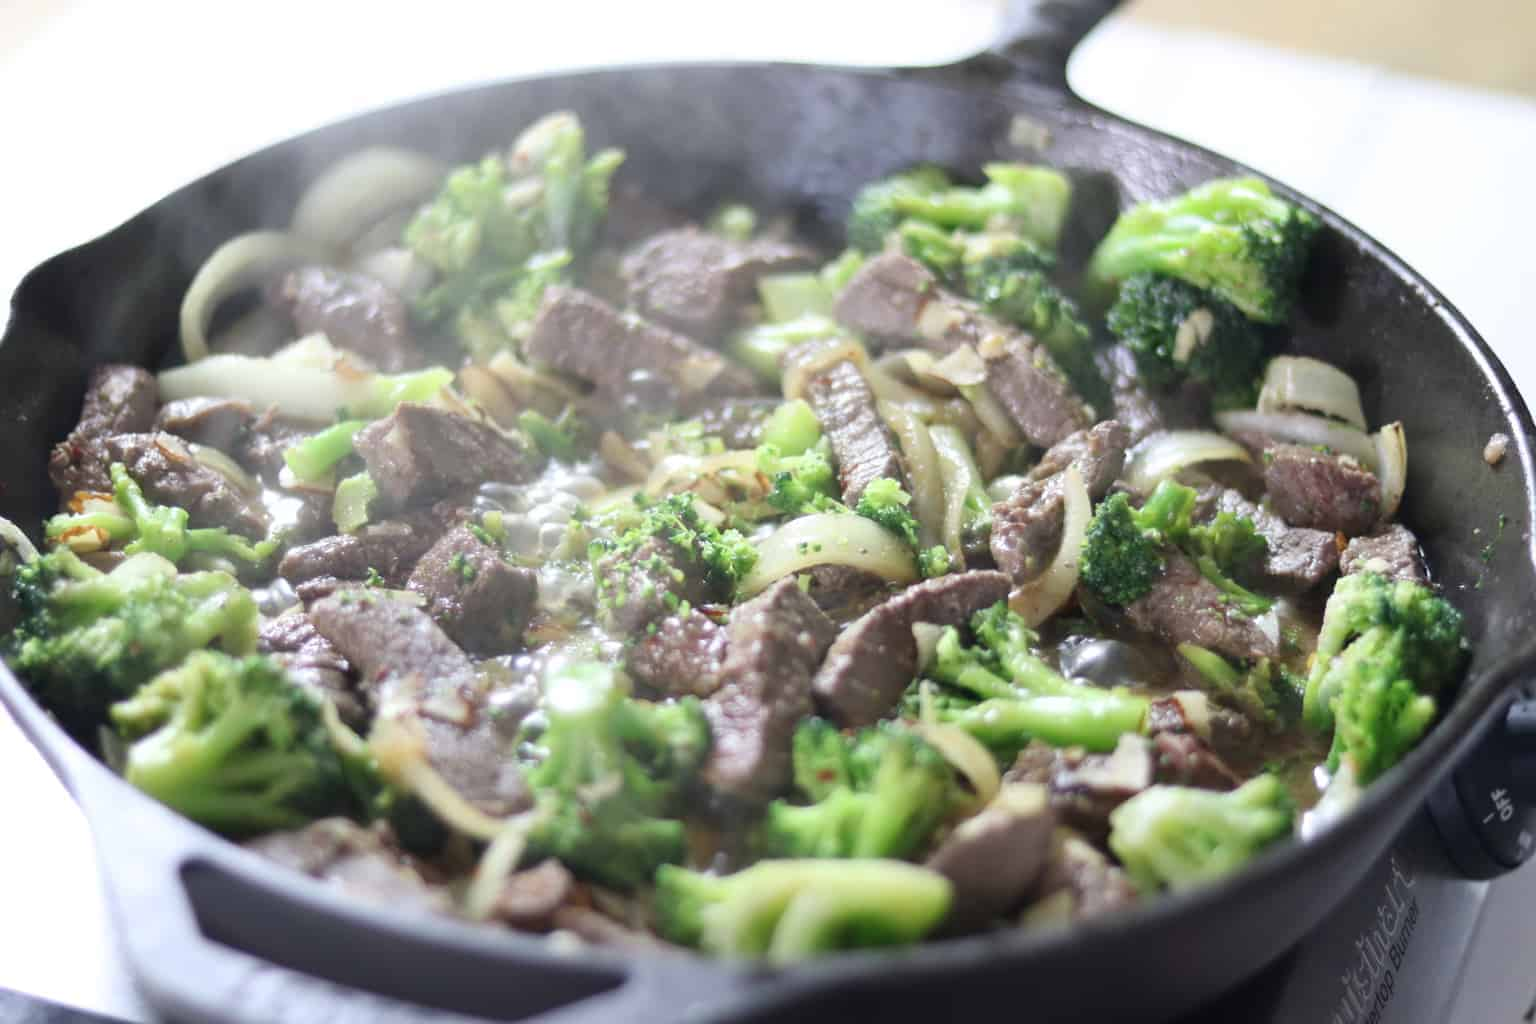 Broccoli, beef, and onions cooking in cast iron skillet.